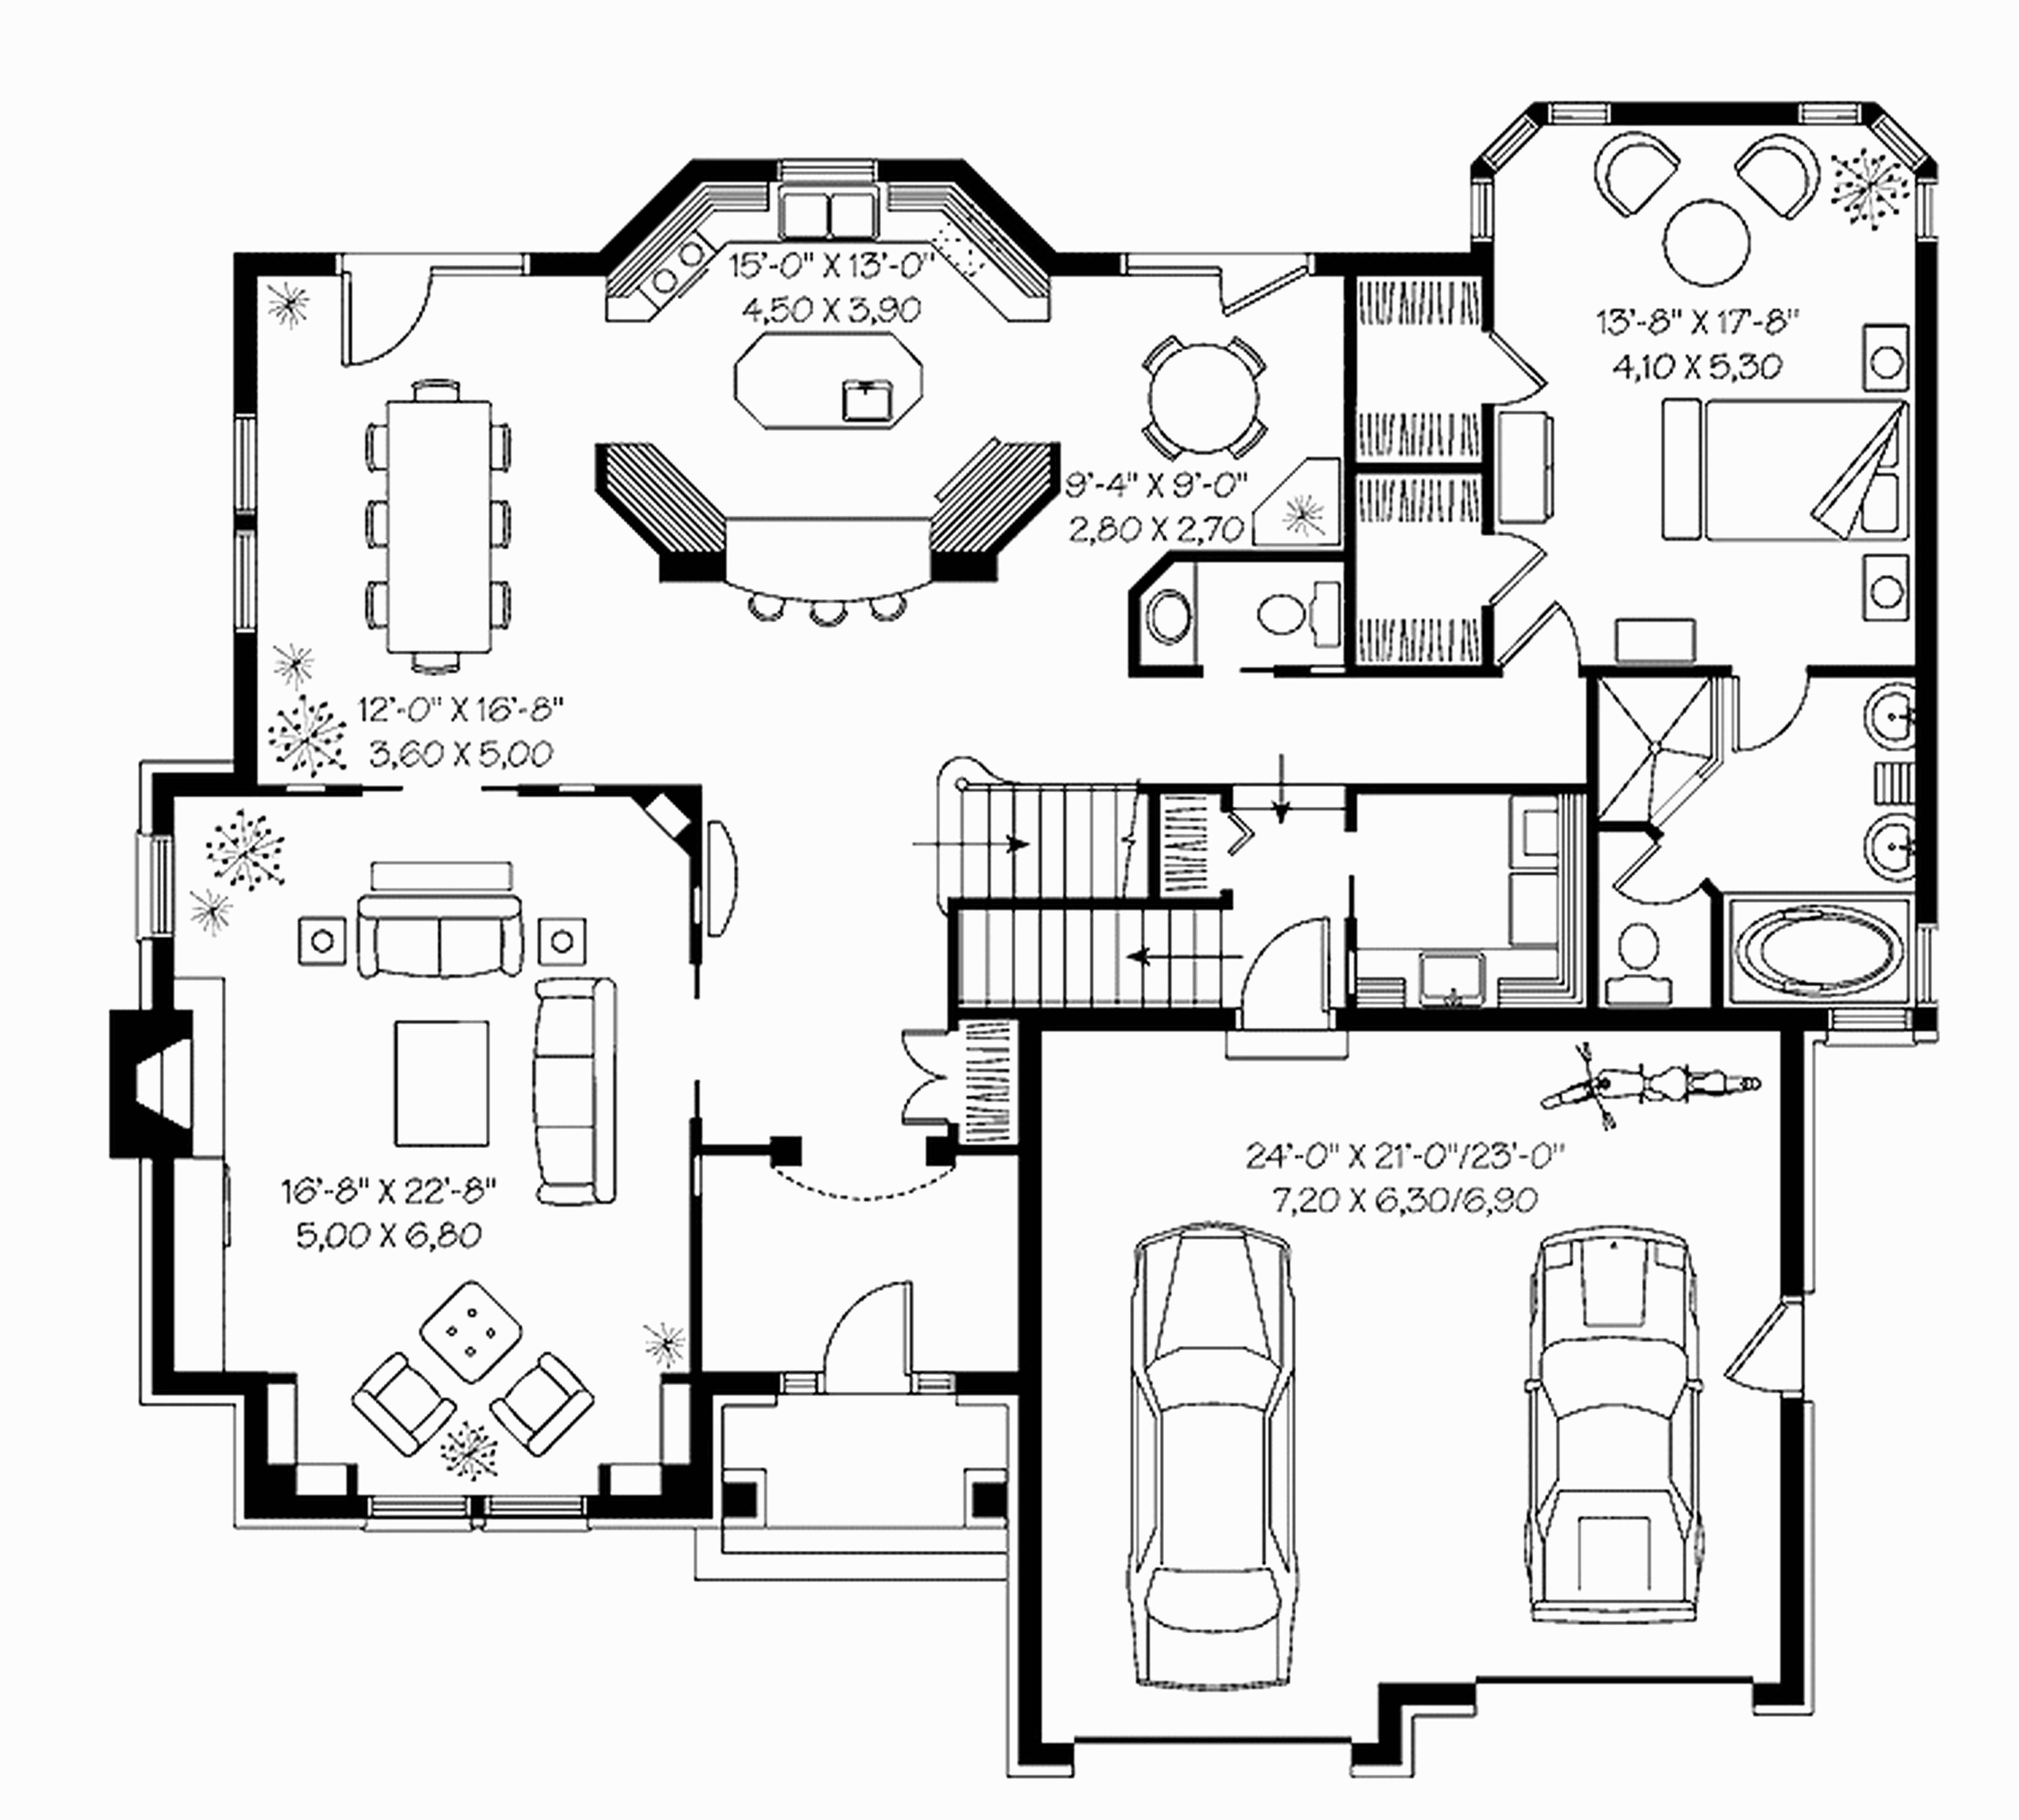 Two Story House Plans Indian Style Lovely 2 Story House Plans 3000 Sq Ft Lovely 3000 Square Modern House Floor Plans Minecraft House Designs Mansion Floor Plan